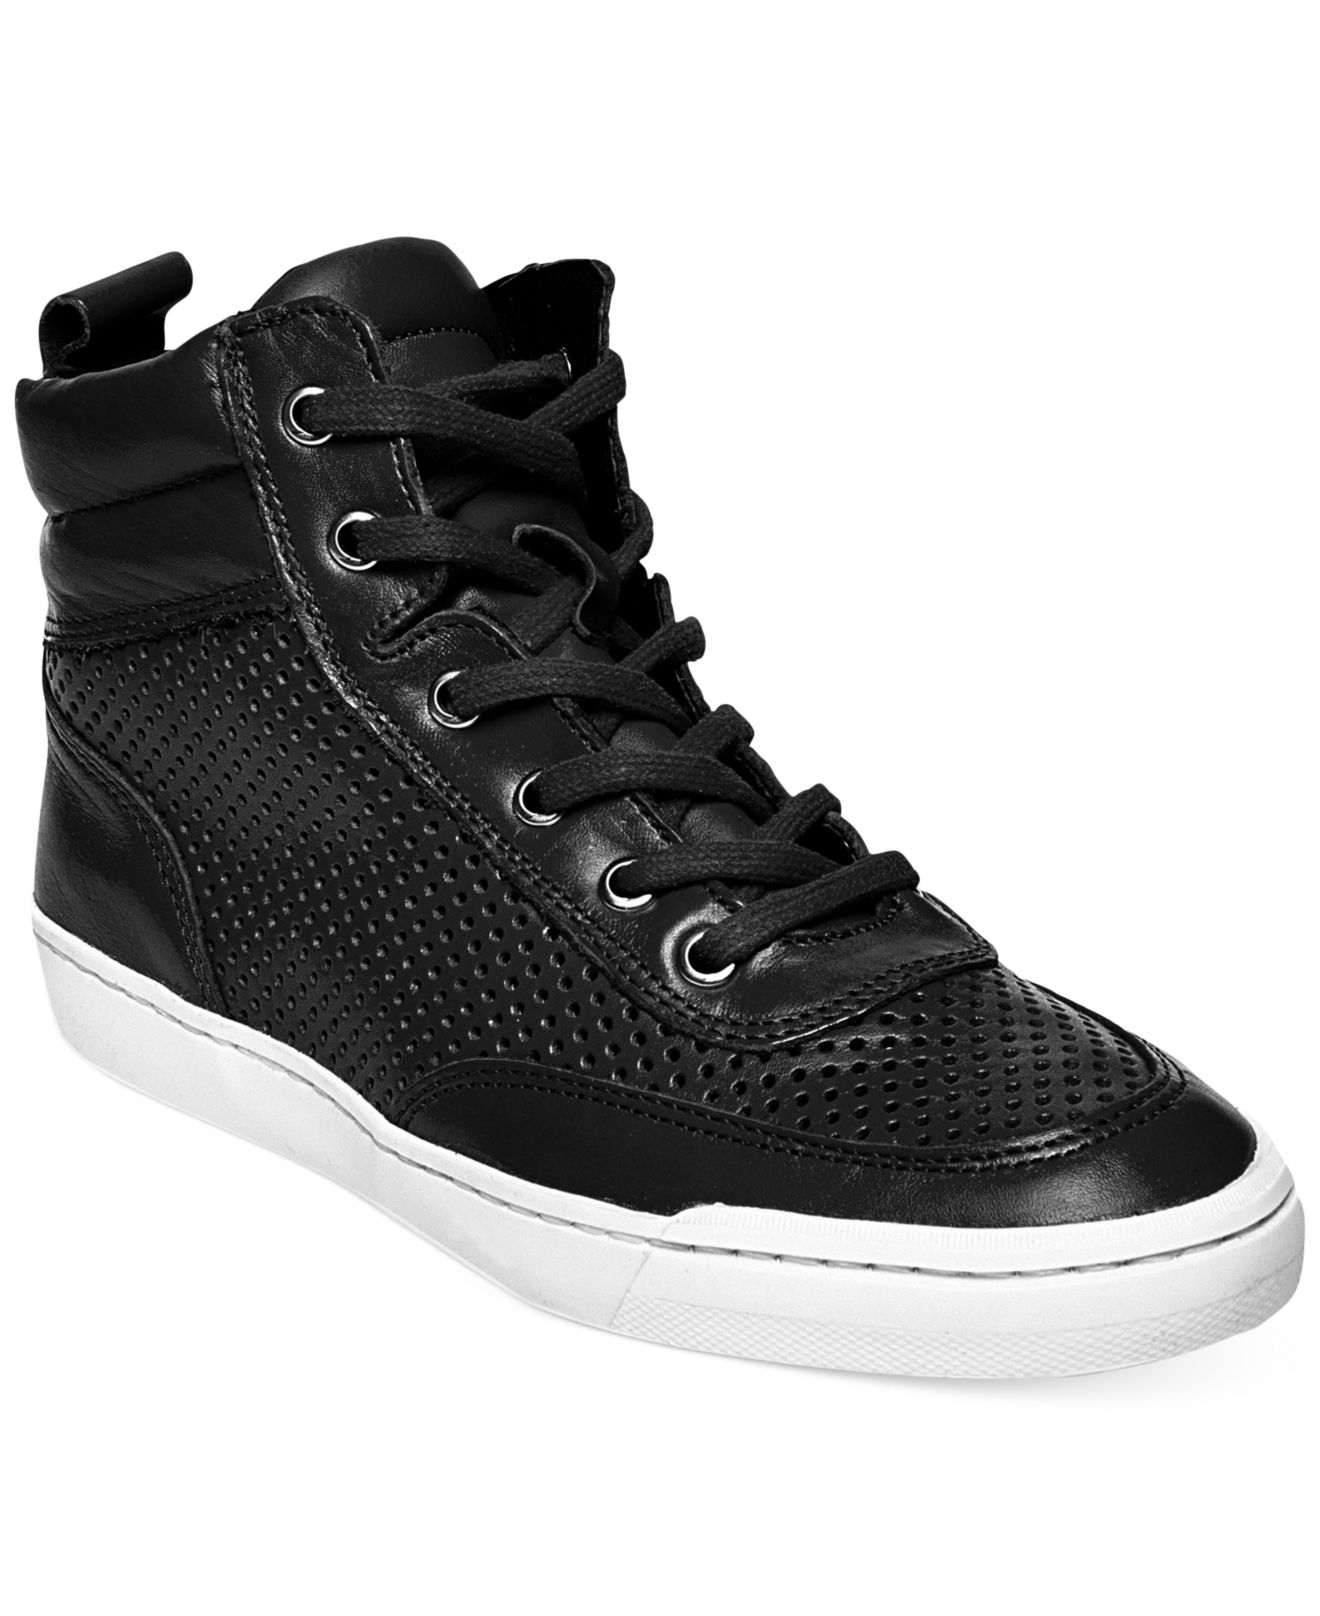 Lyst - Steve Madden Womens Mikeyy High Top Sneakers In Black-1016